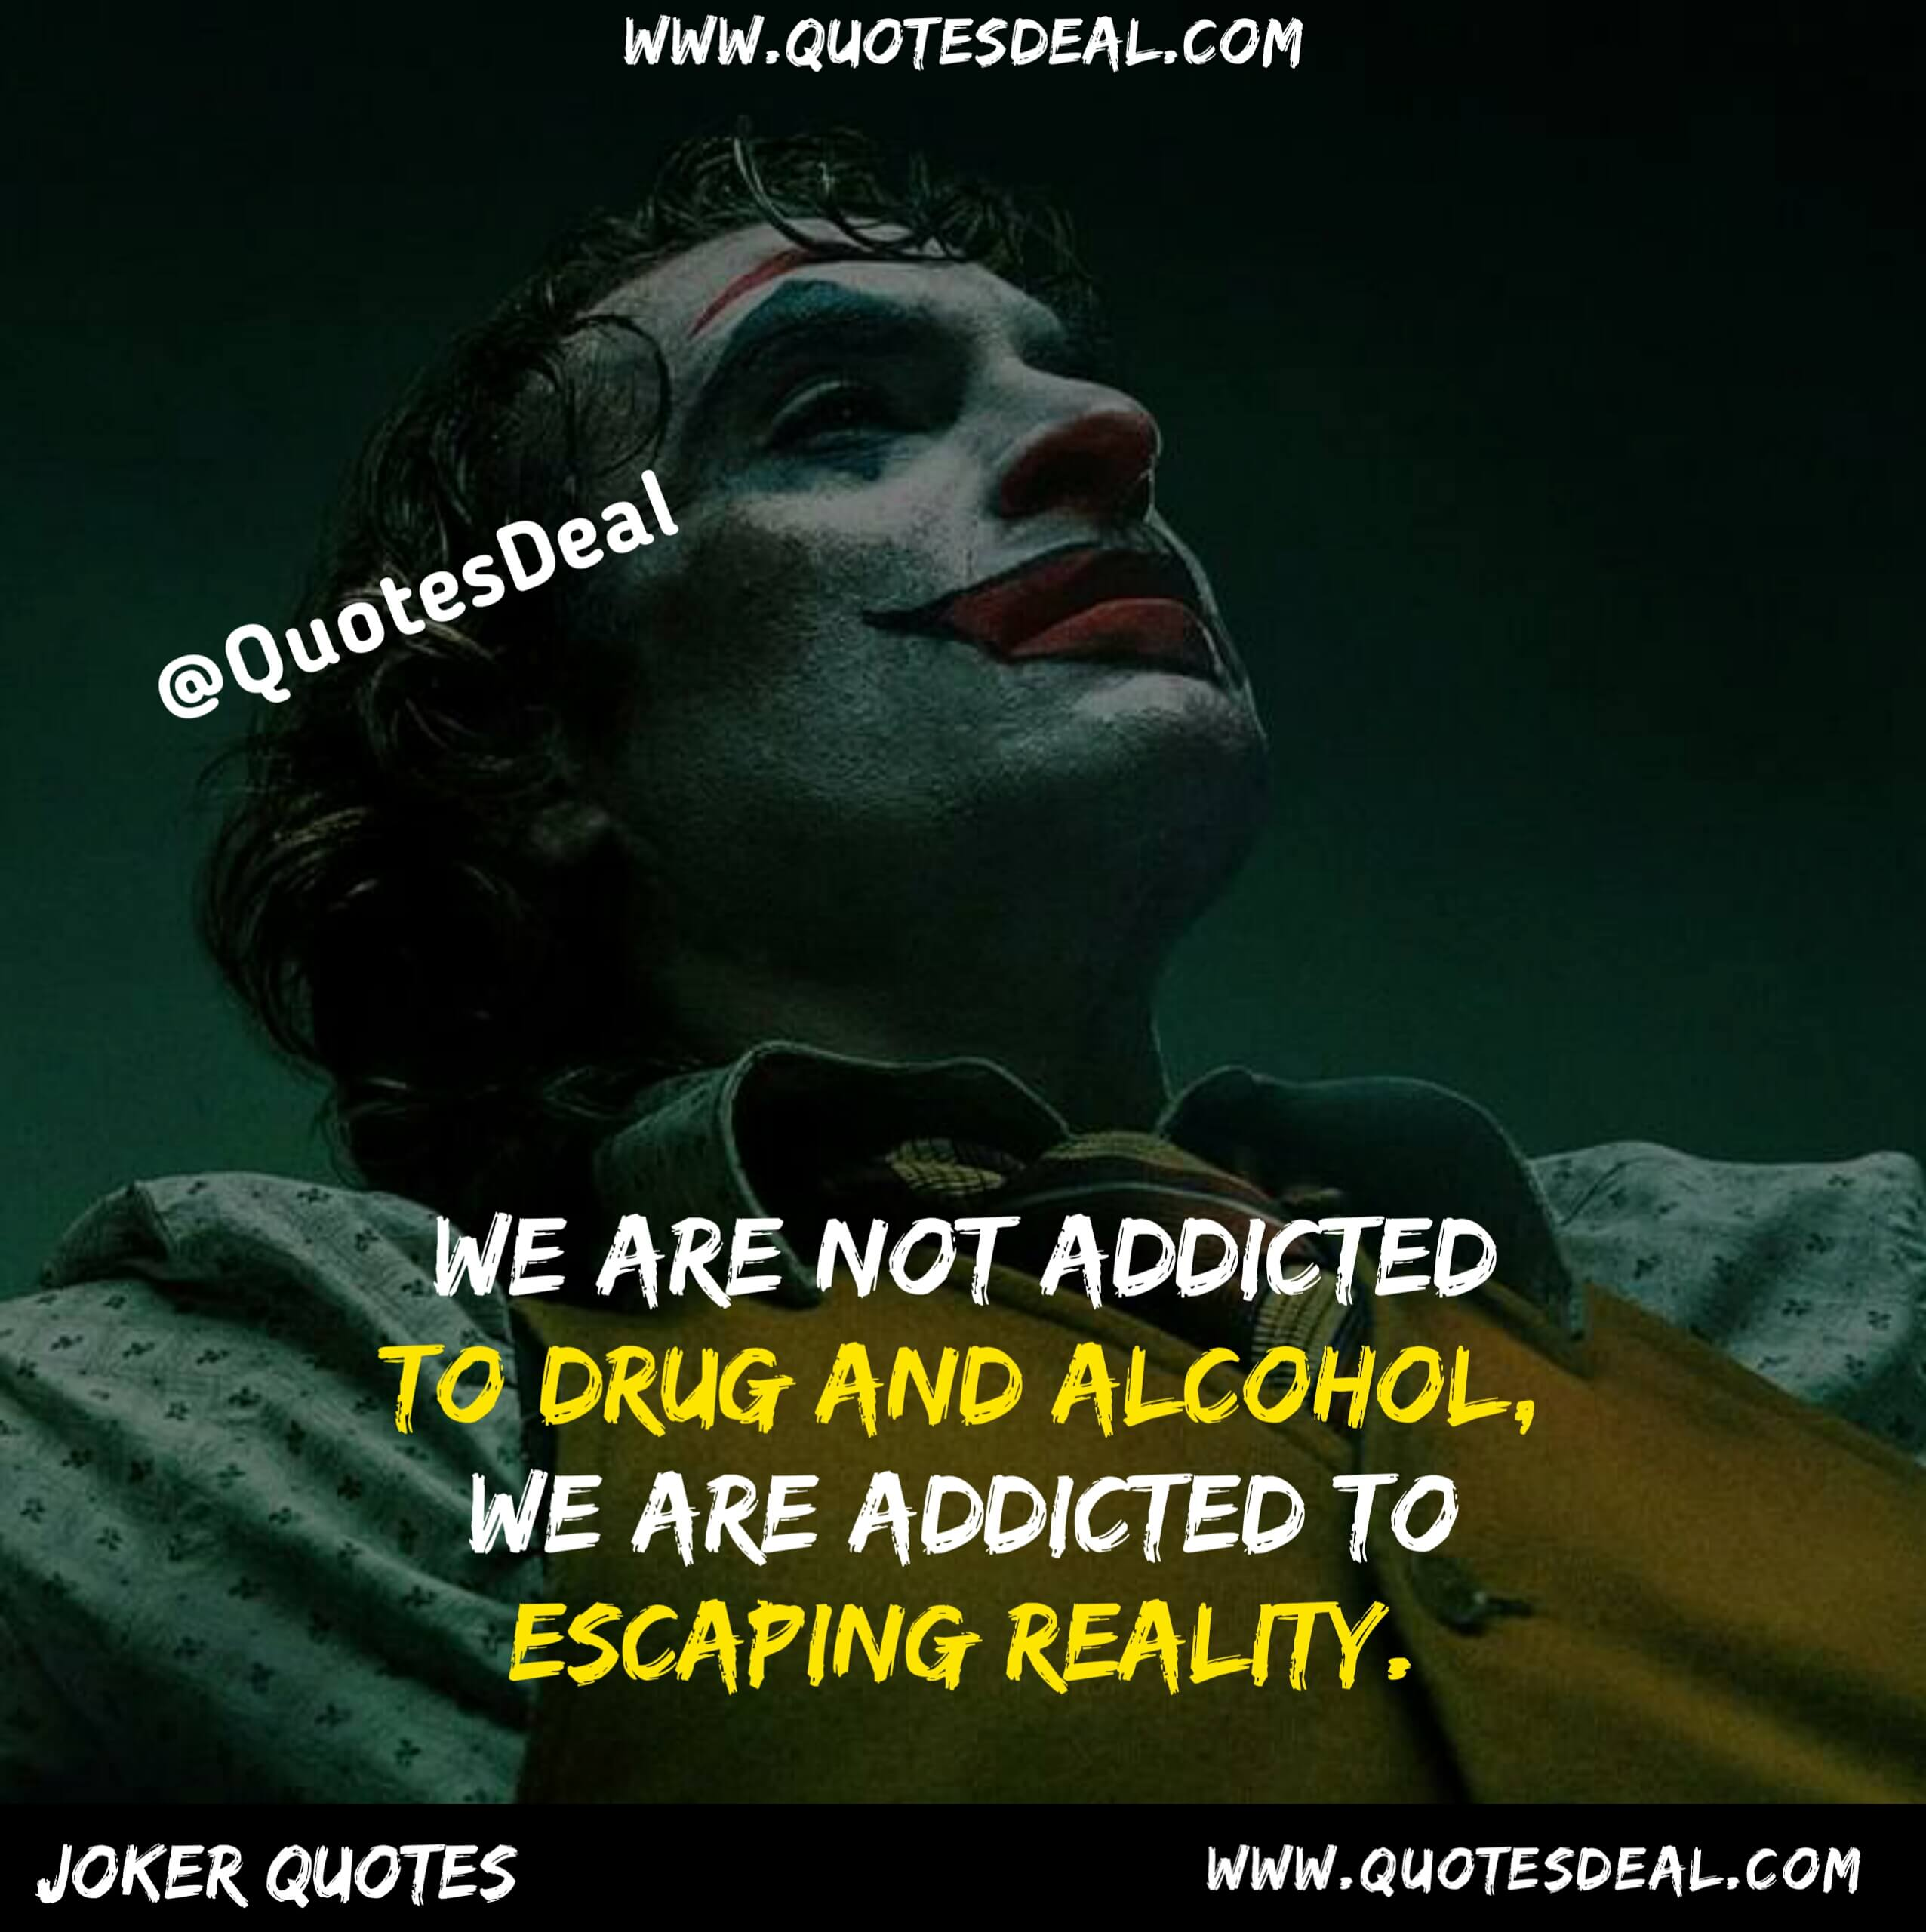 We are not addicted to drug